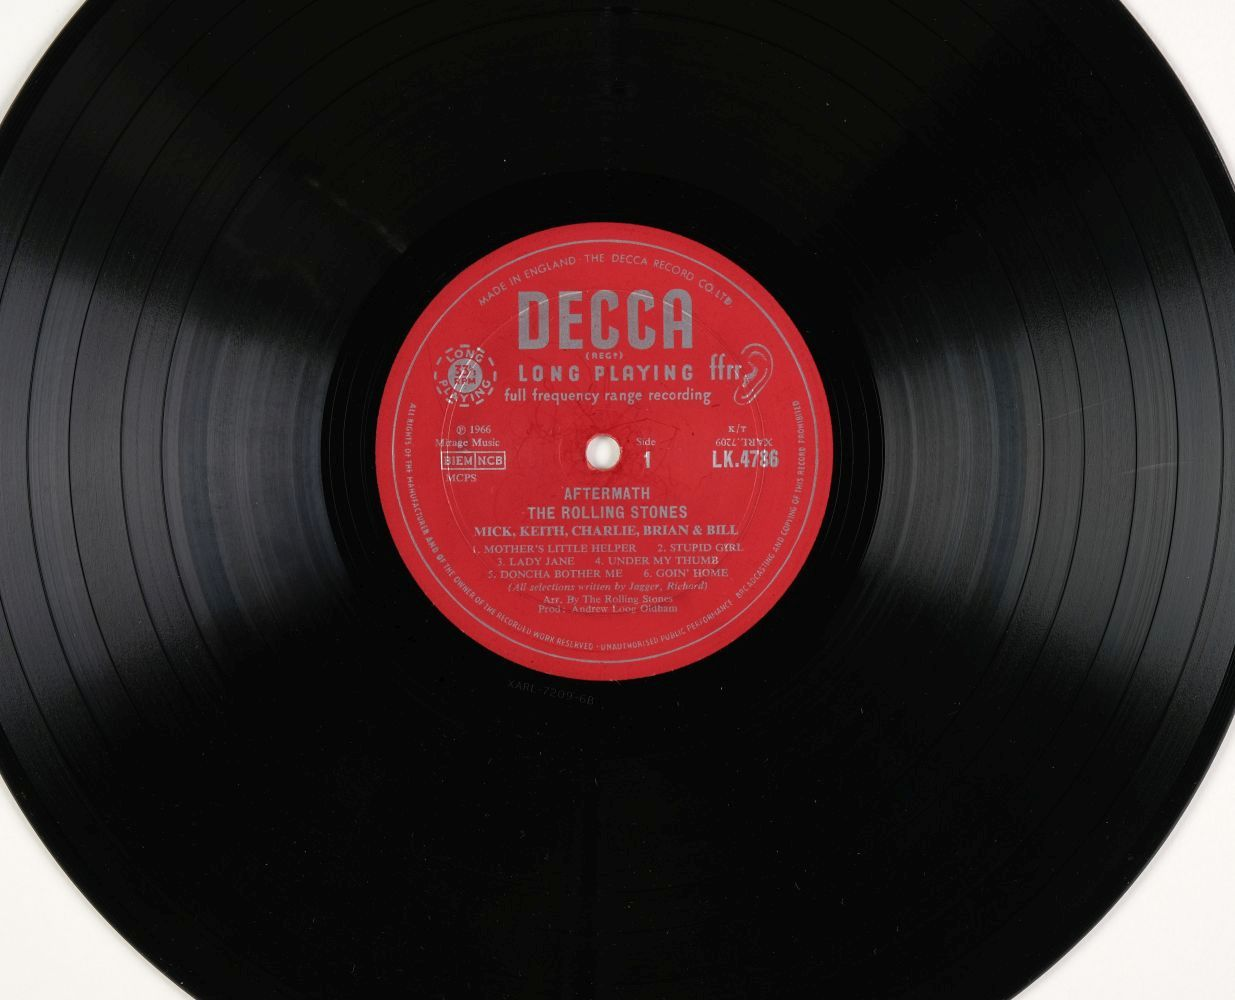 * The Rolling Stones. Collection of early Rolling Stones records / LPs - Image 4 of 10